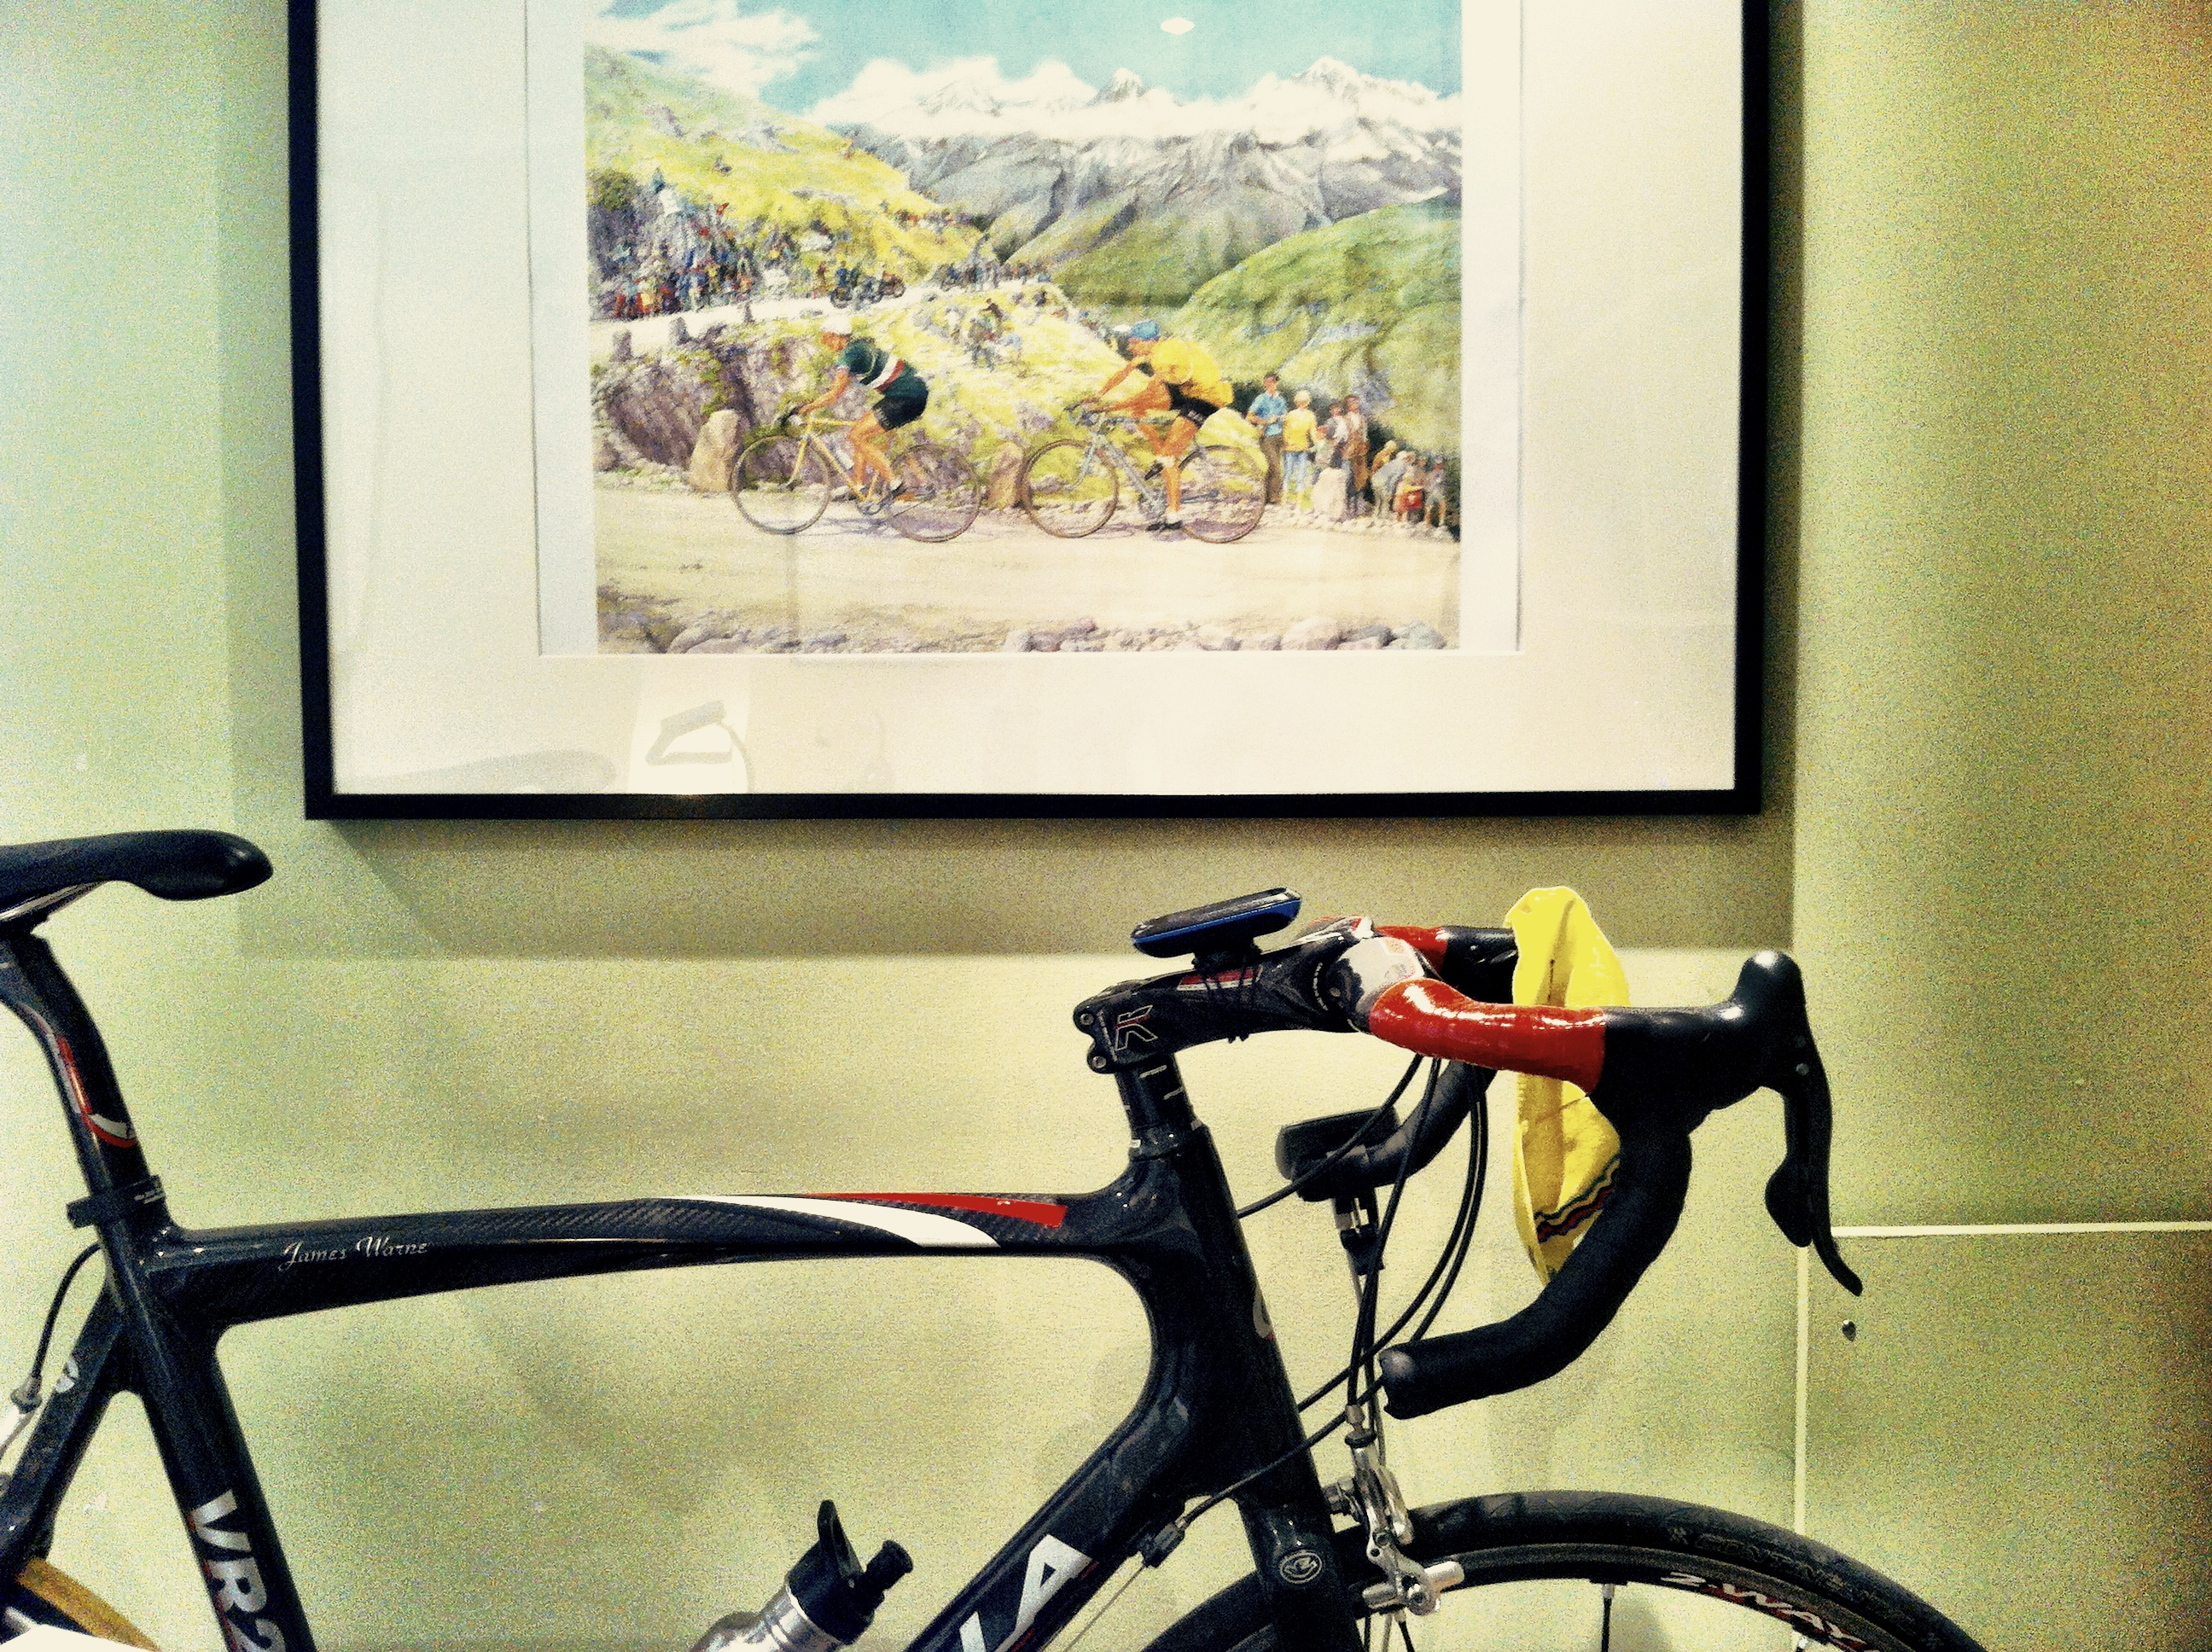 The bike will spend the winter in the shadow of Bartali and Coppi climbing through the Pyrenees.